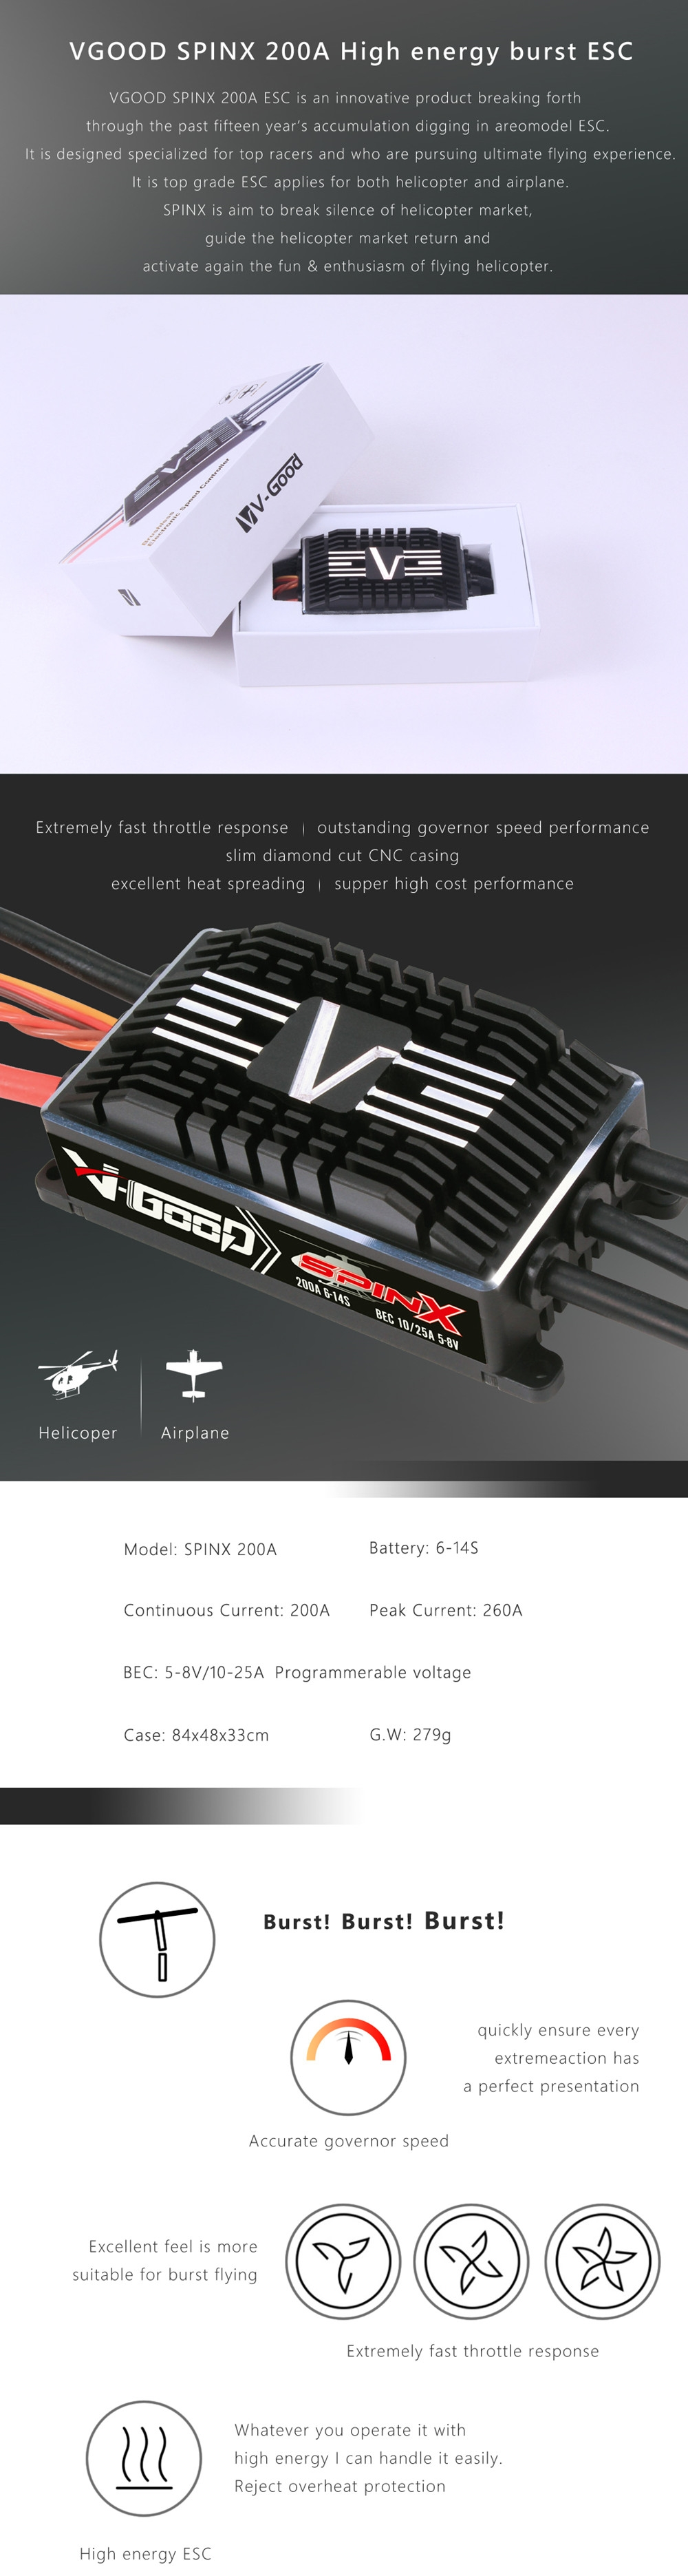 V-GOOD SPINX 200A 5-8V 25A Brushless ESC Support HV 6-14S Lipo Battery For 700 Class RC Helicopter RC Airplane